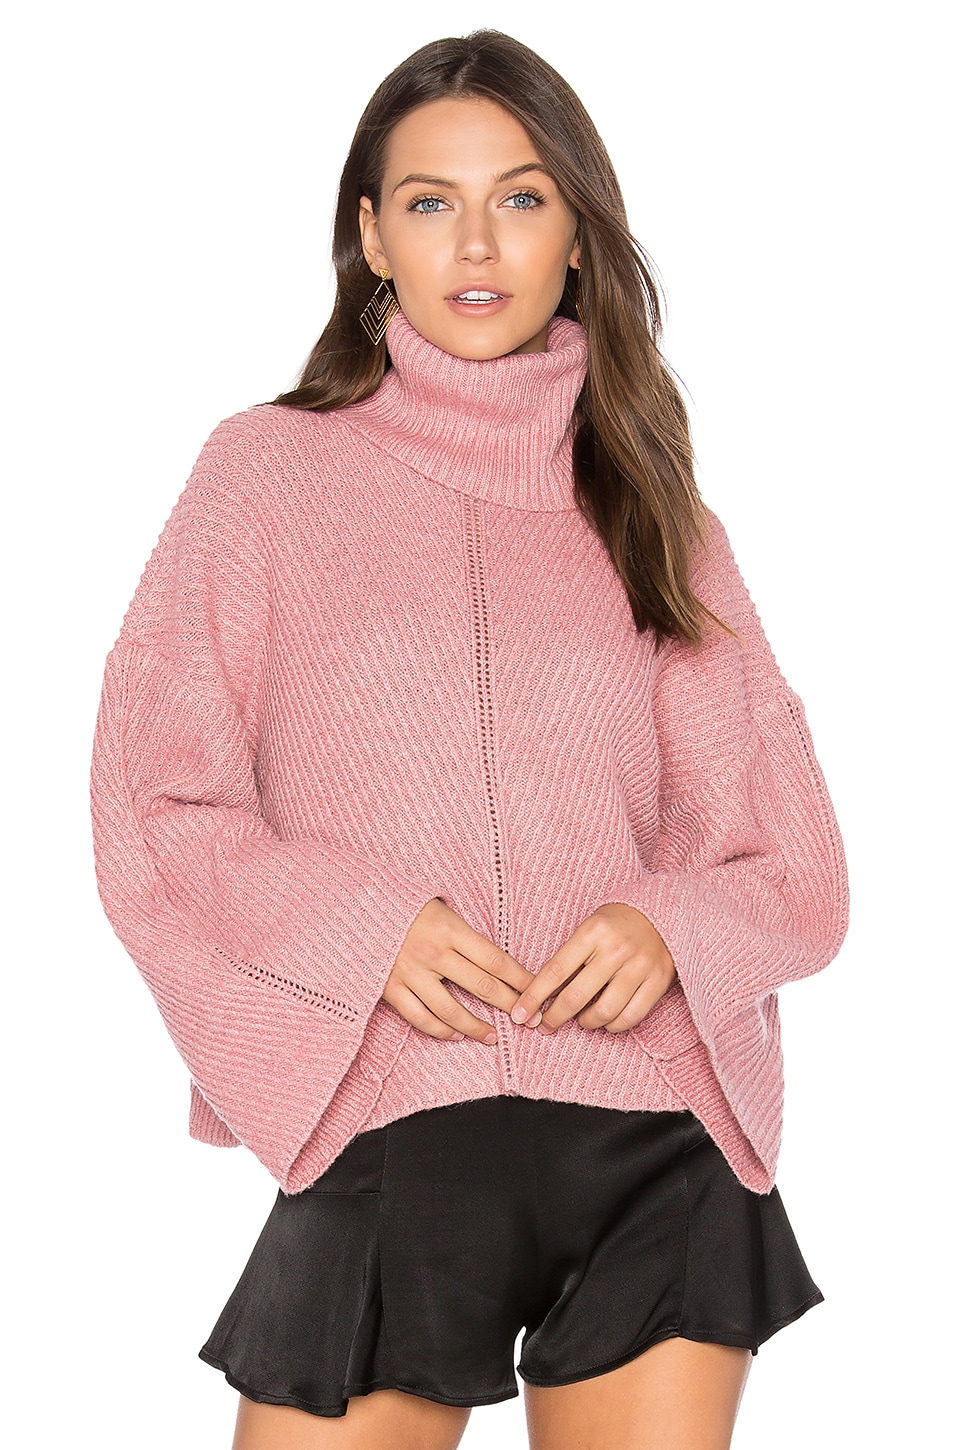 cupcakes and cashmere Phil Sweater in Dusty Rose